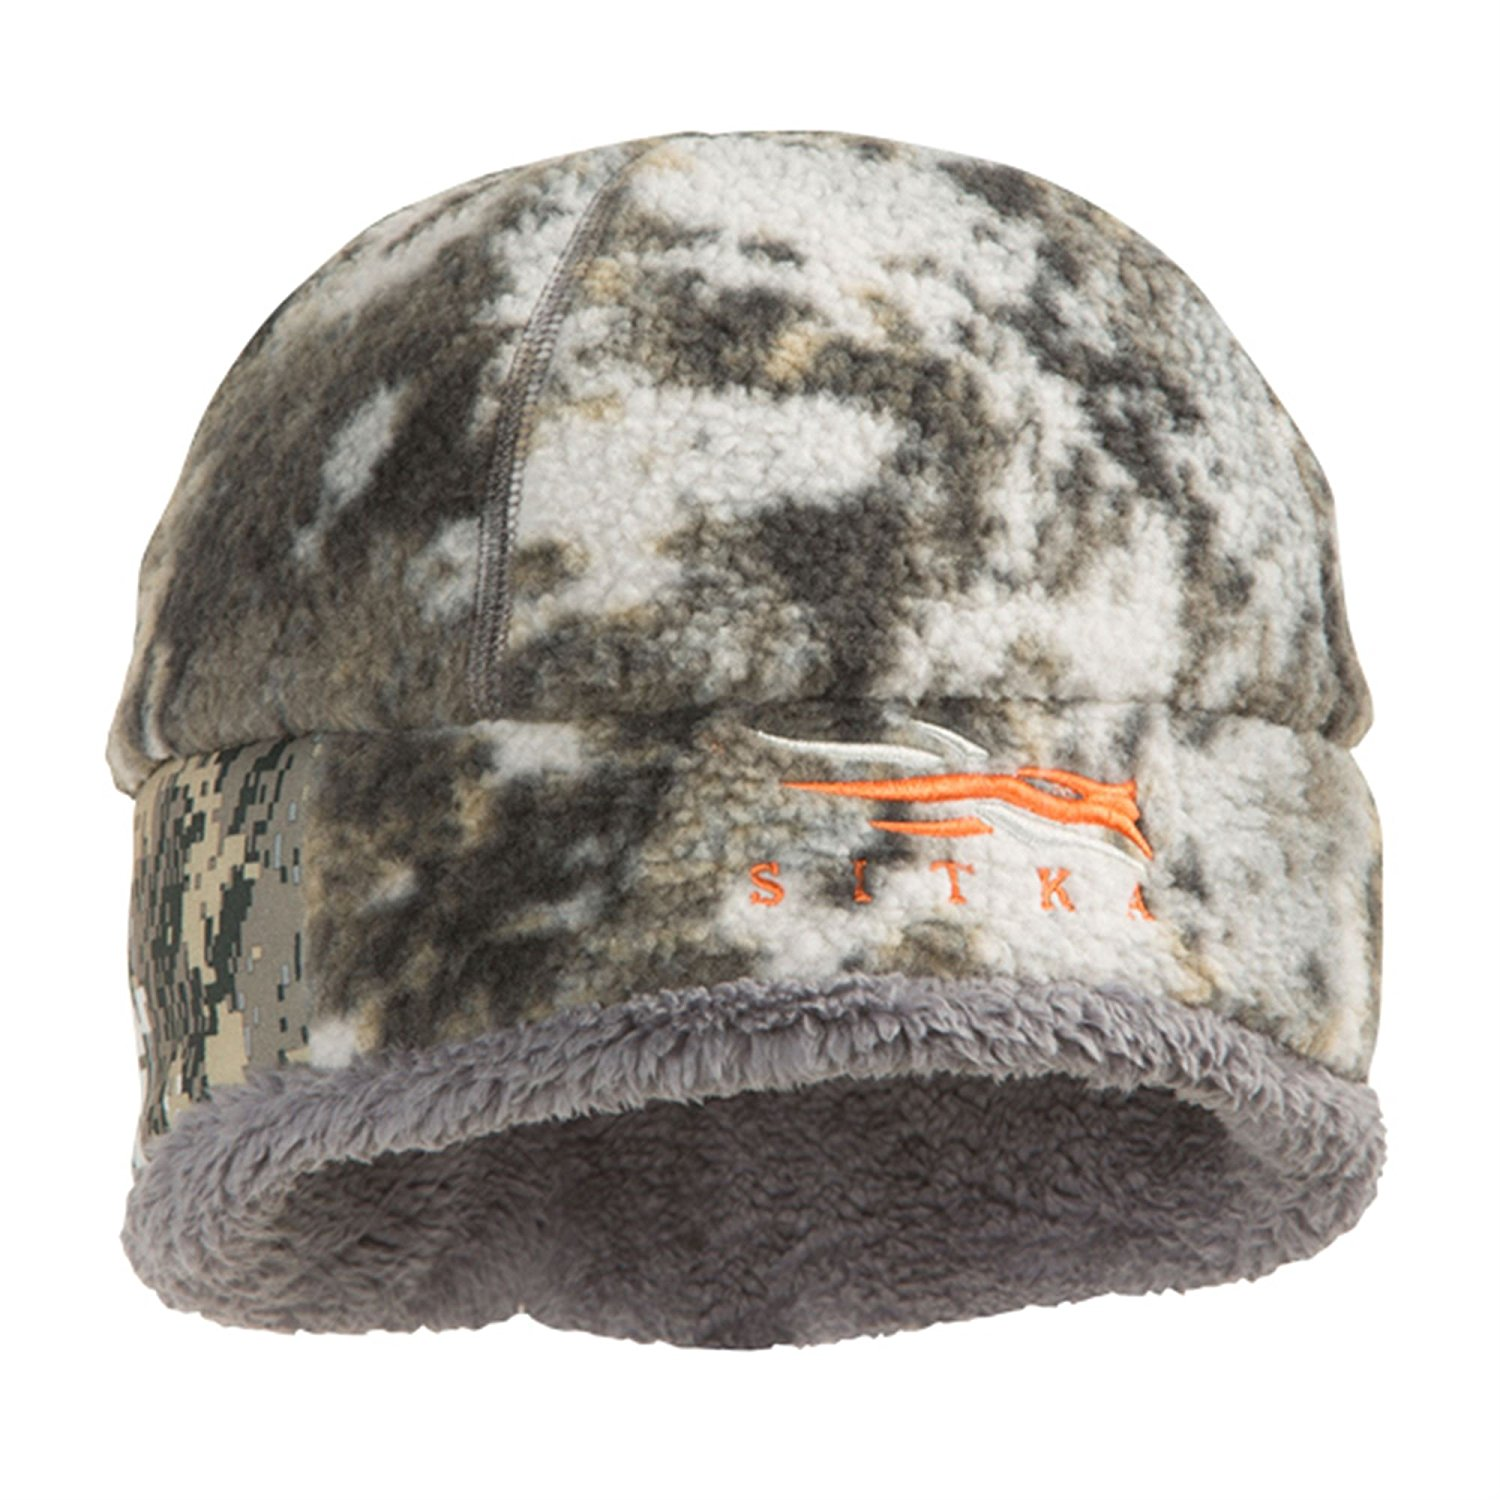 SITKA Gear Fanatic WS Beanie, Optifade Elevated II, OSFA ...